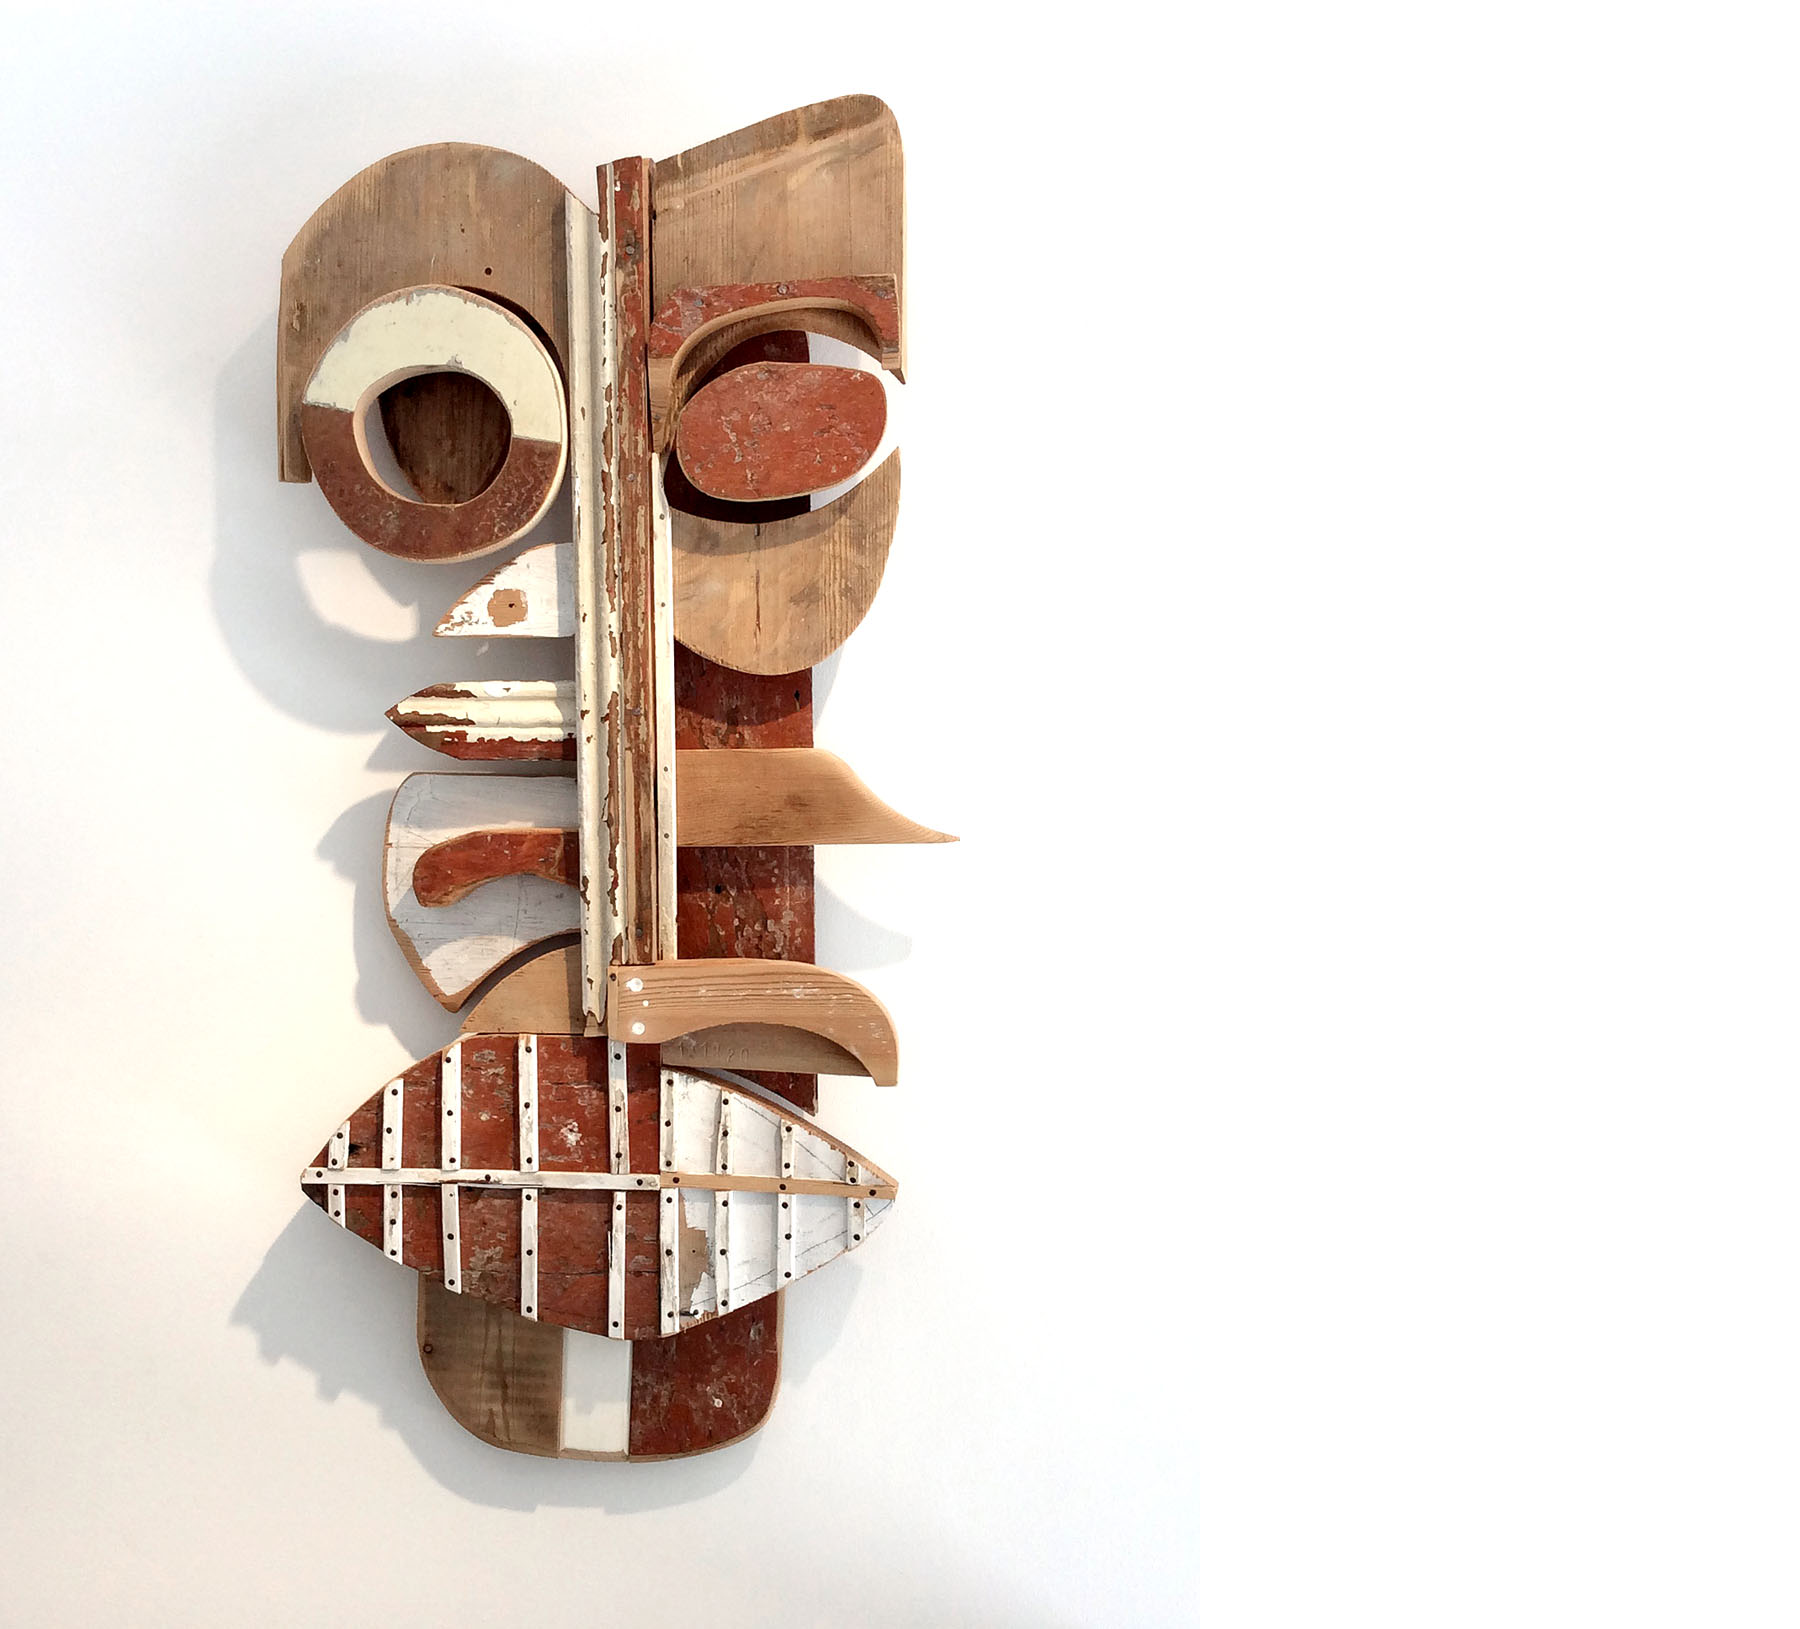 FACE TO FACE, Holz, Lack, 102 x 47 x 11 cm